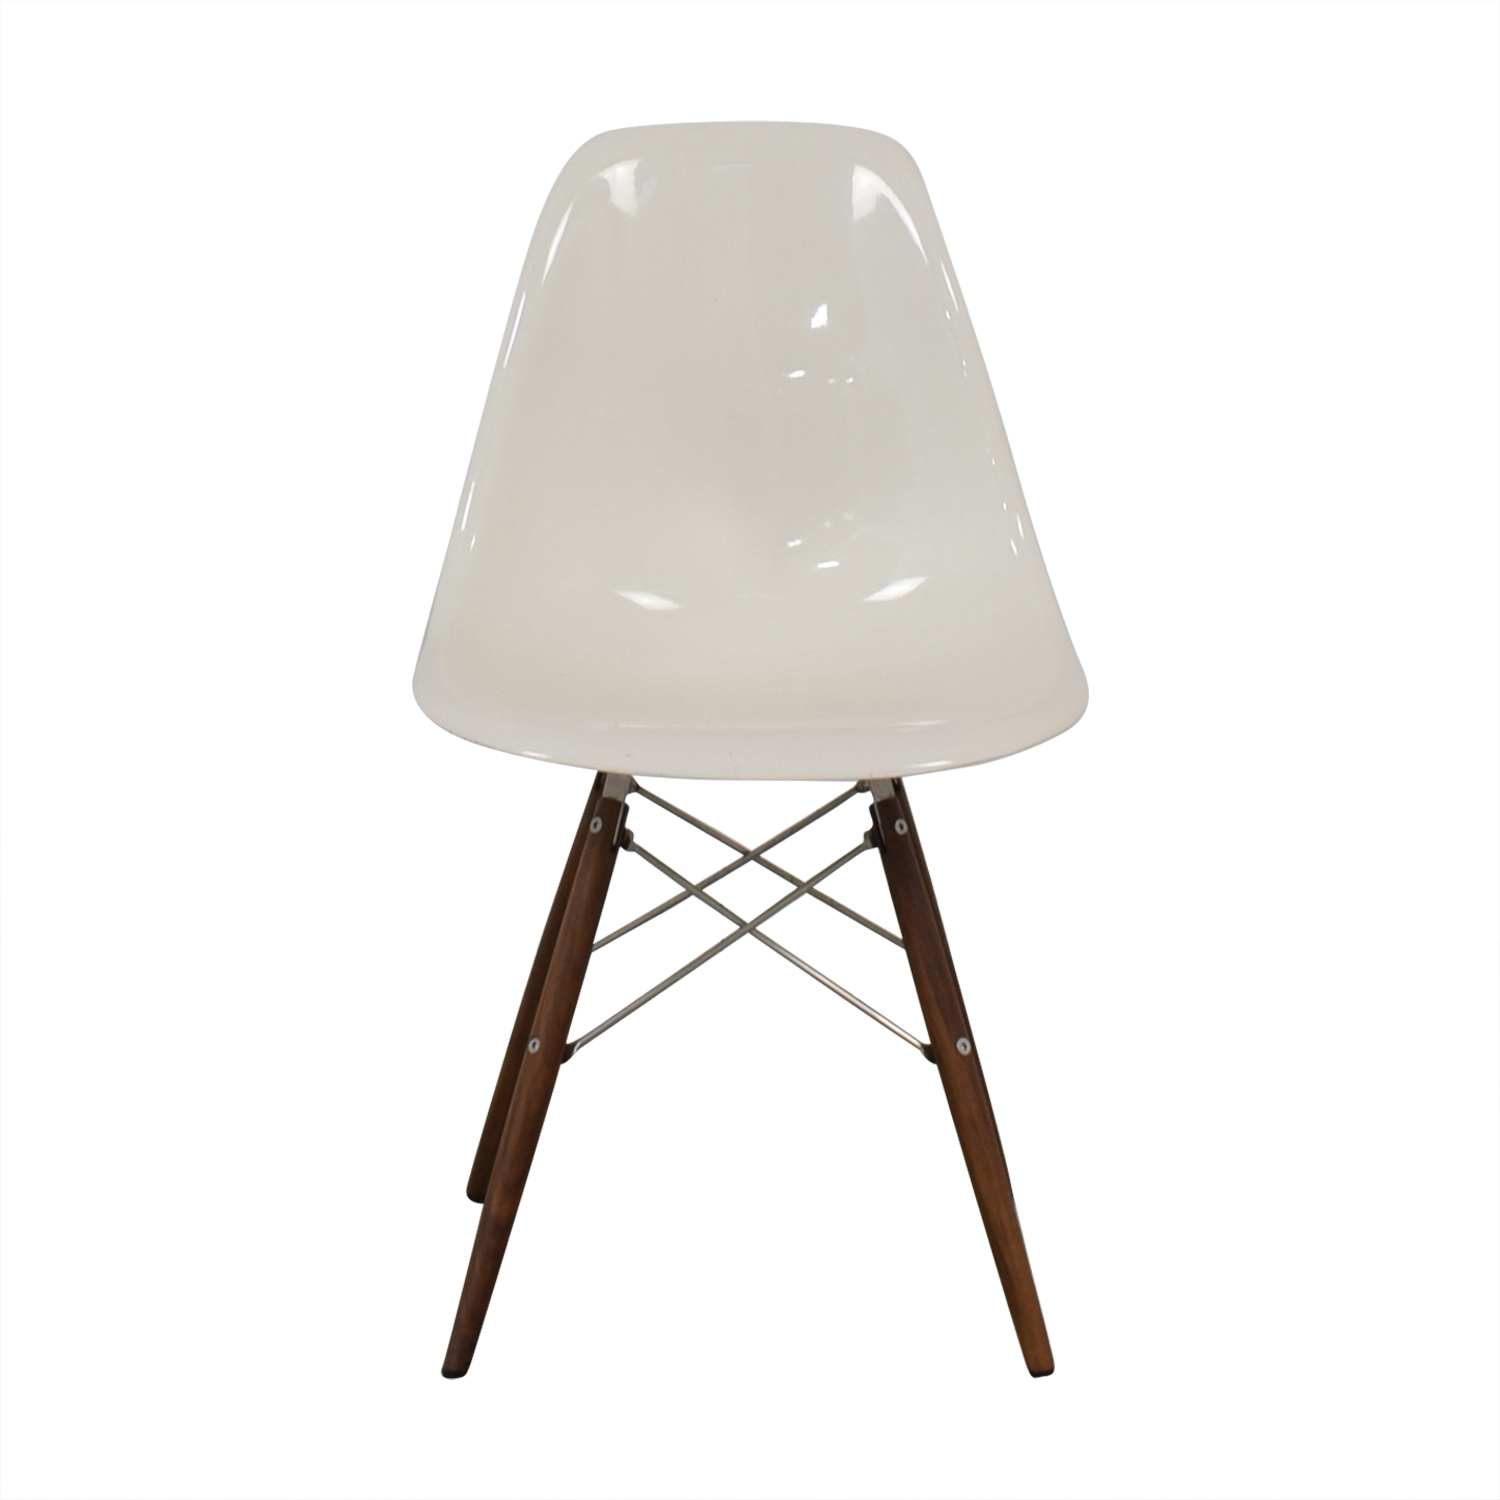 Herman Miller Herman Miller Eames Plastic Molded Chair White coupon